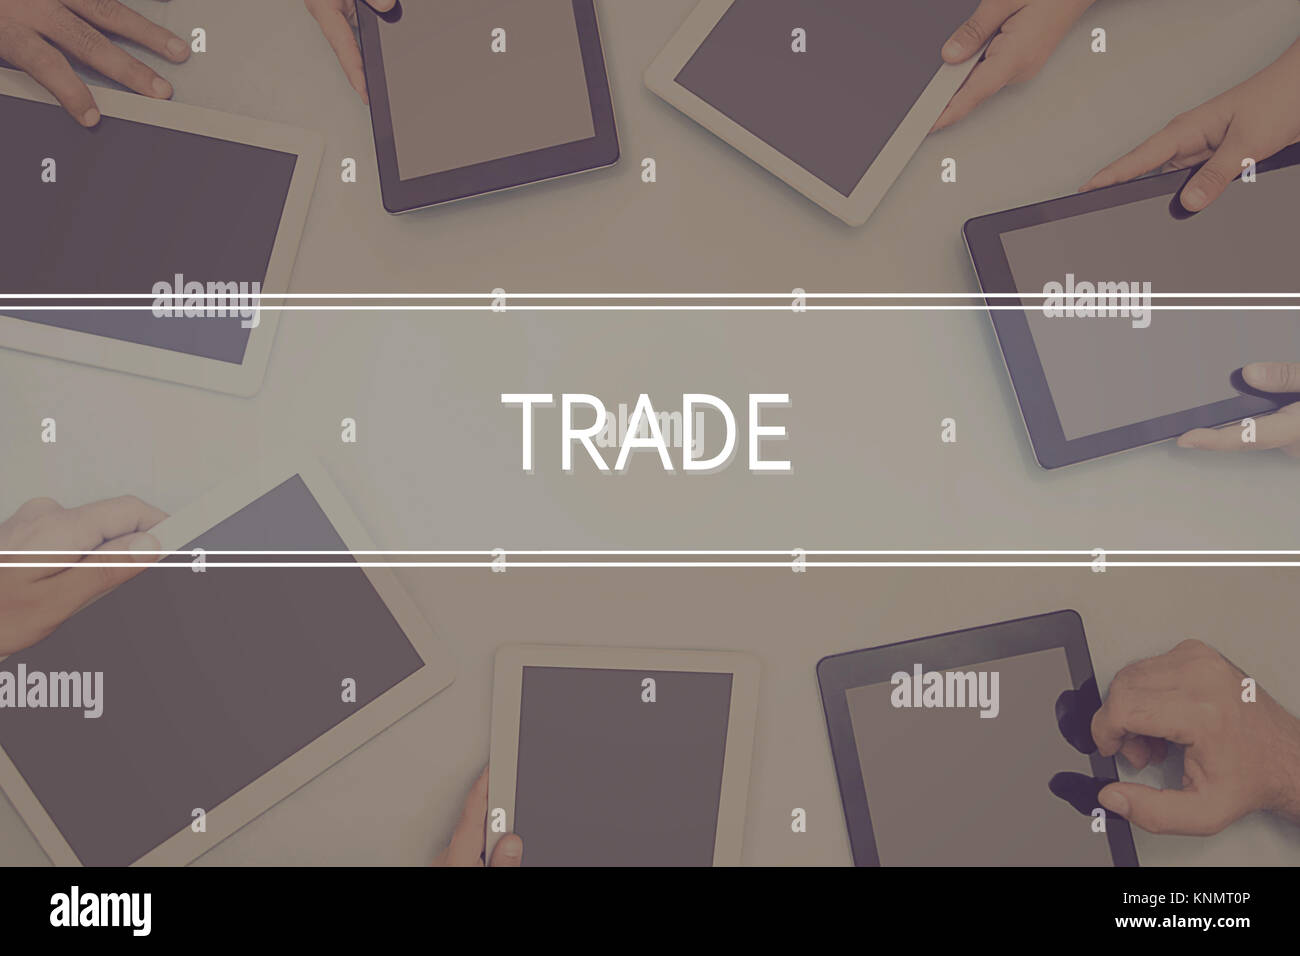 TRADE CONCEPT Business Concept. - Stock Image